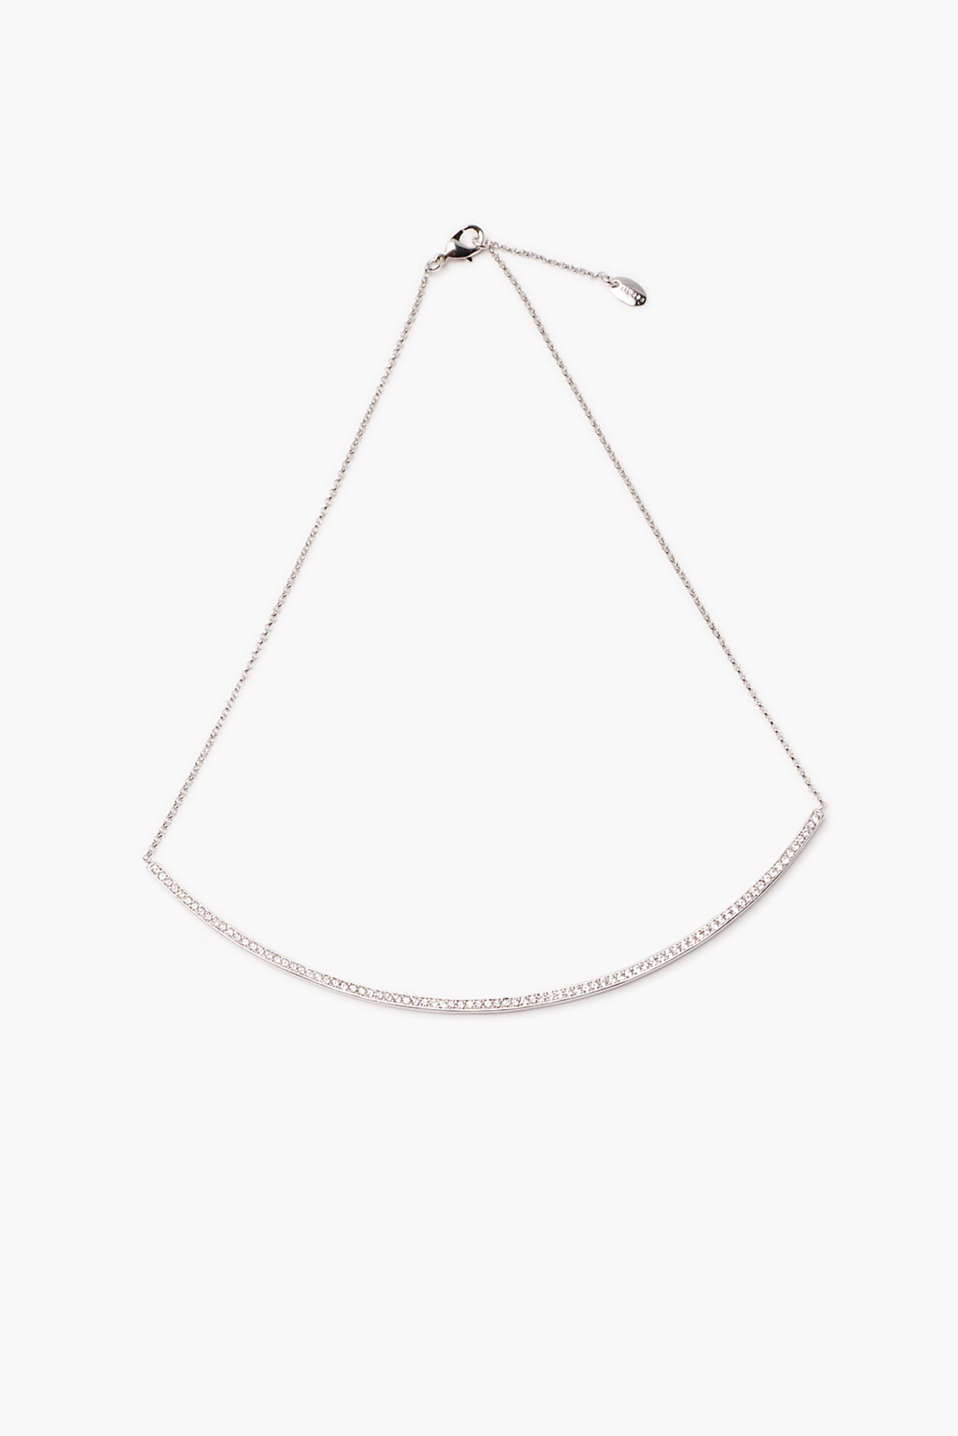 Esprit - Necklace with zirconias in a long setting